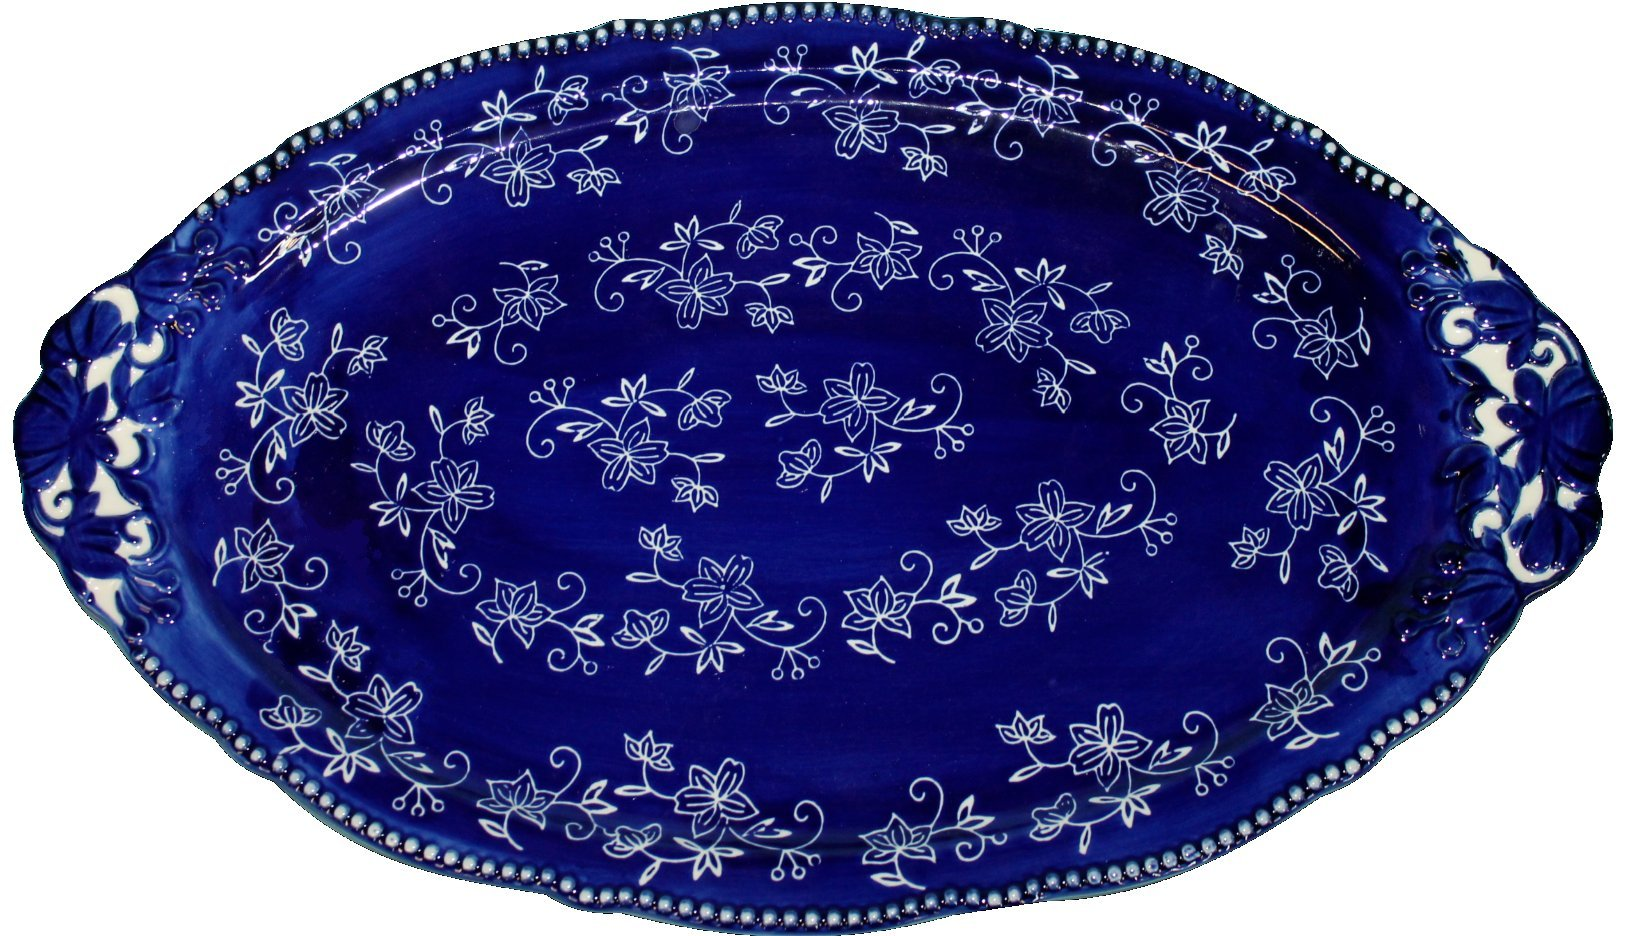 Temp-tations Elegant Platter Serving Tray 18.5 x 12 w//FREE Carving Set Floral Lace Blue